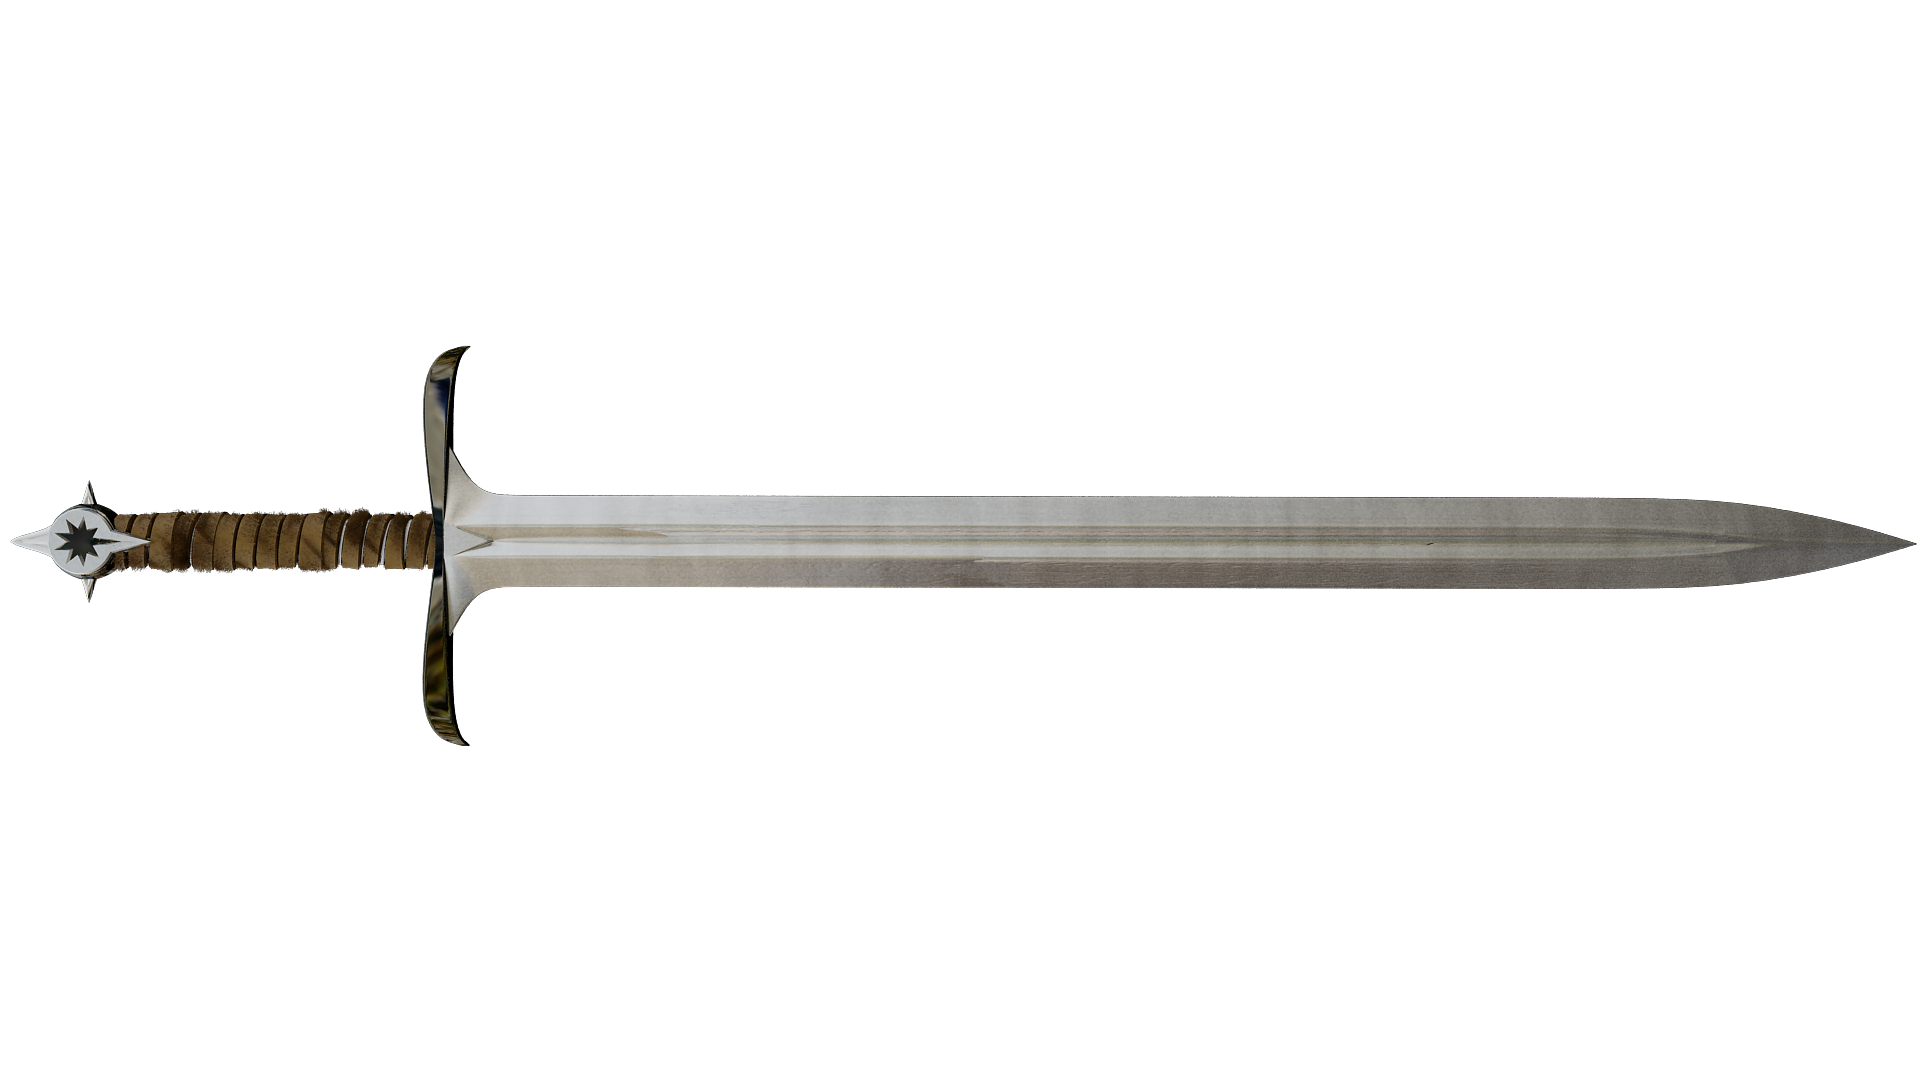 Choix d'une faction - Page 2 Sword-hd-png-sword-png-image-1920